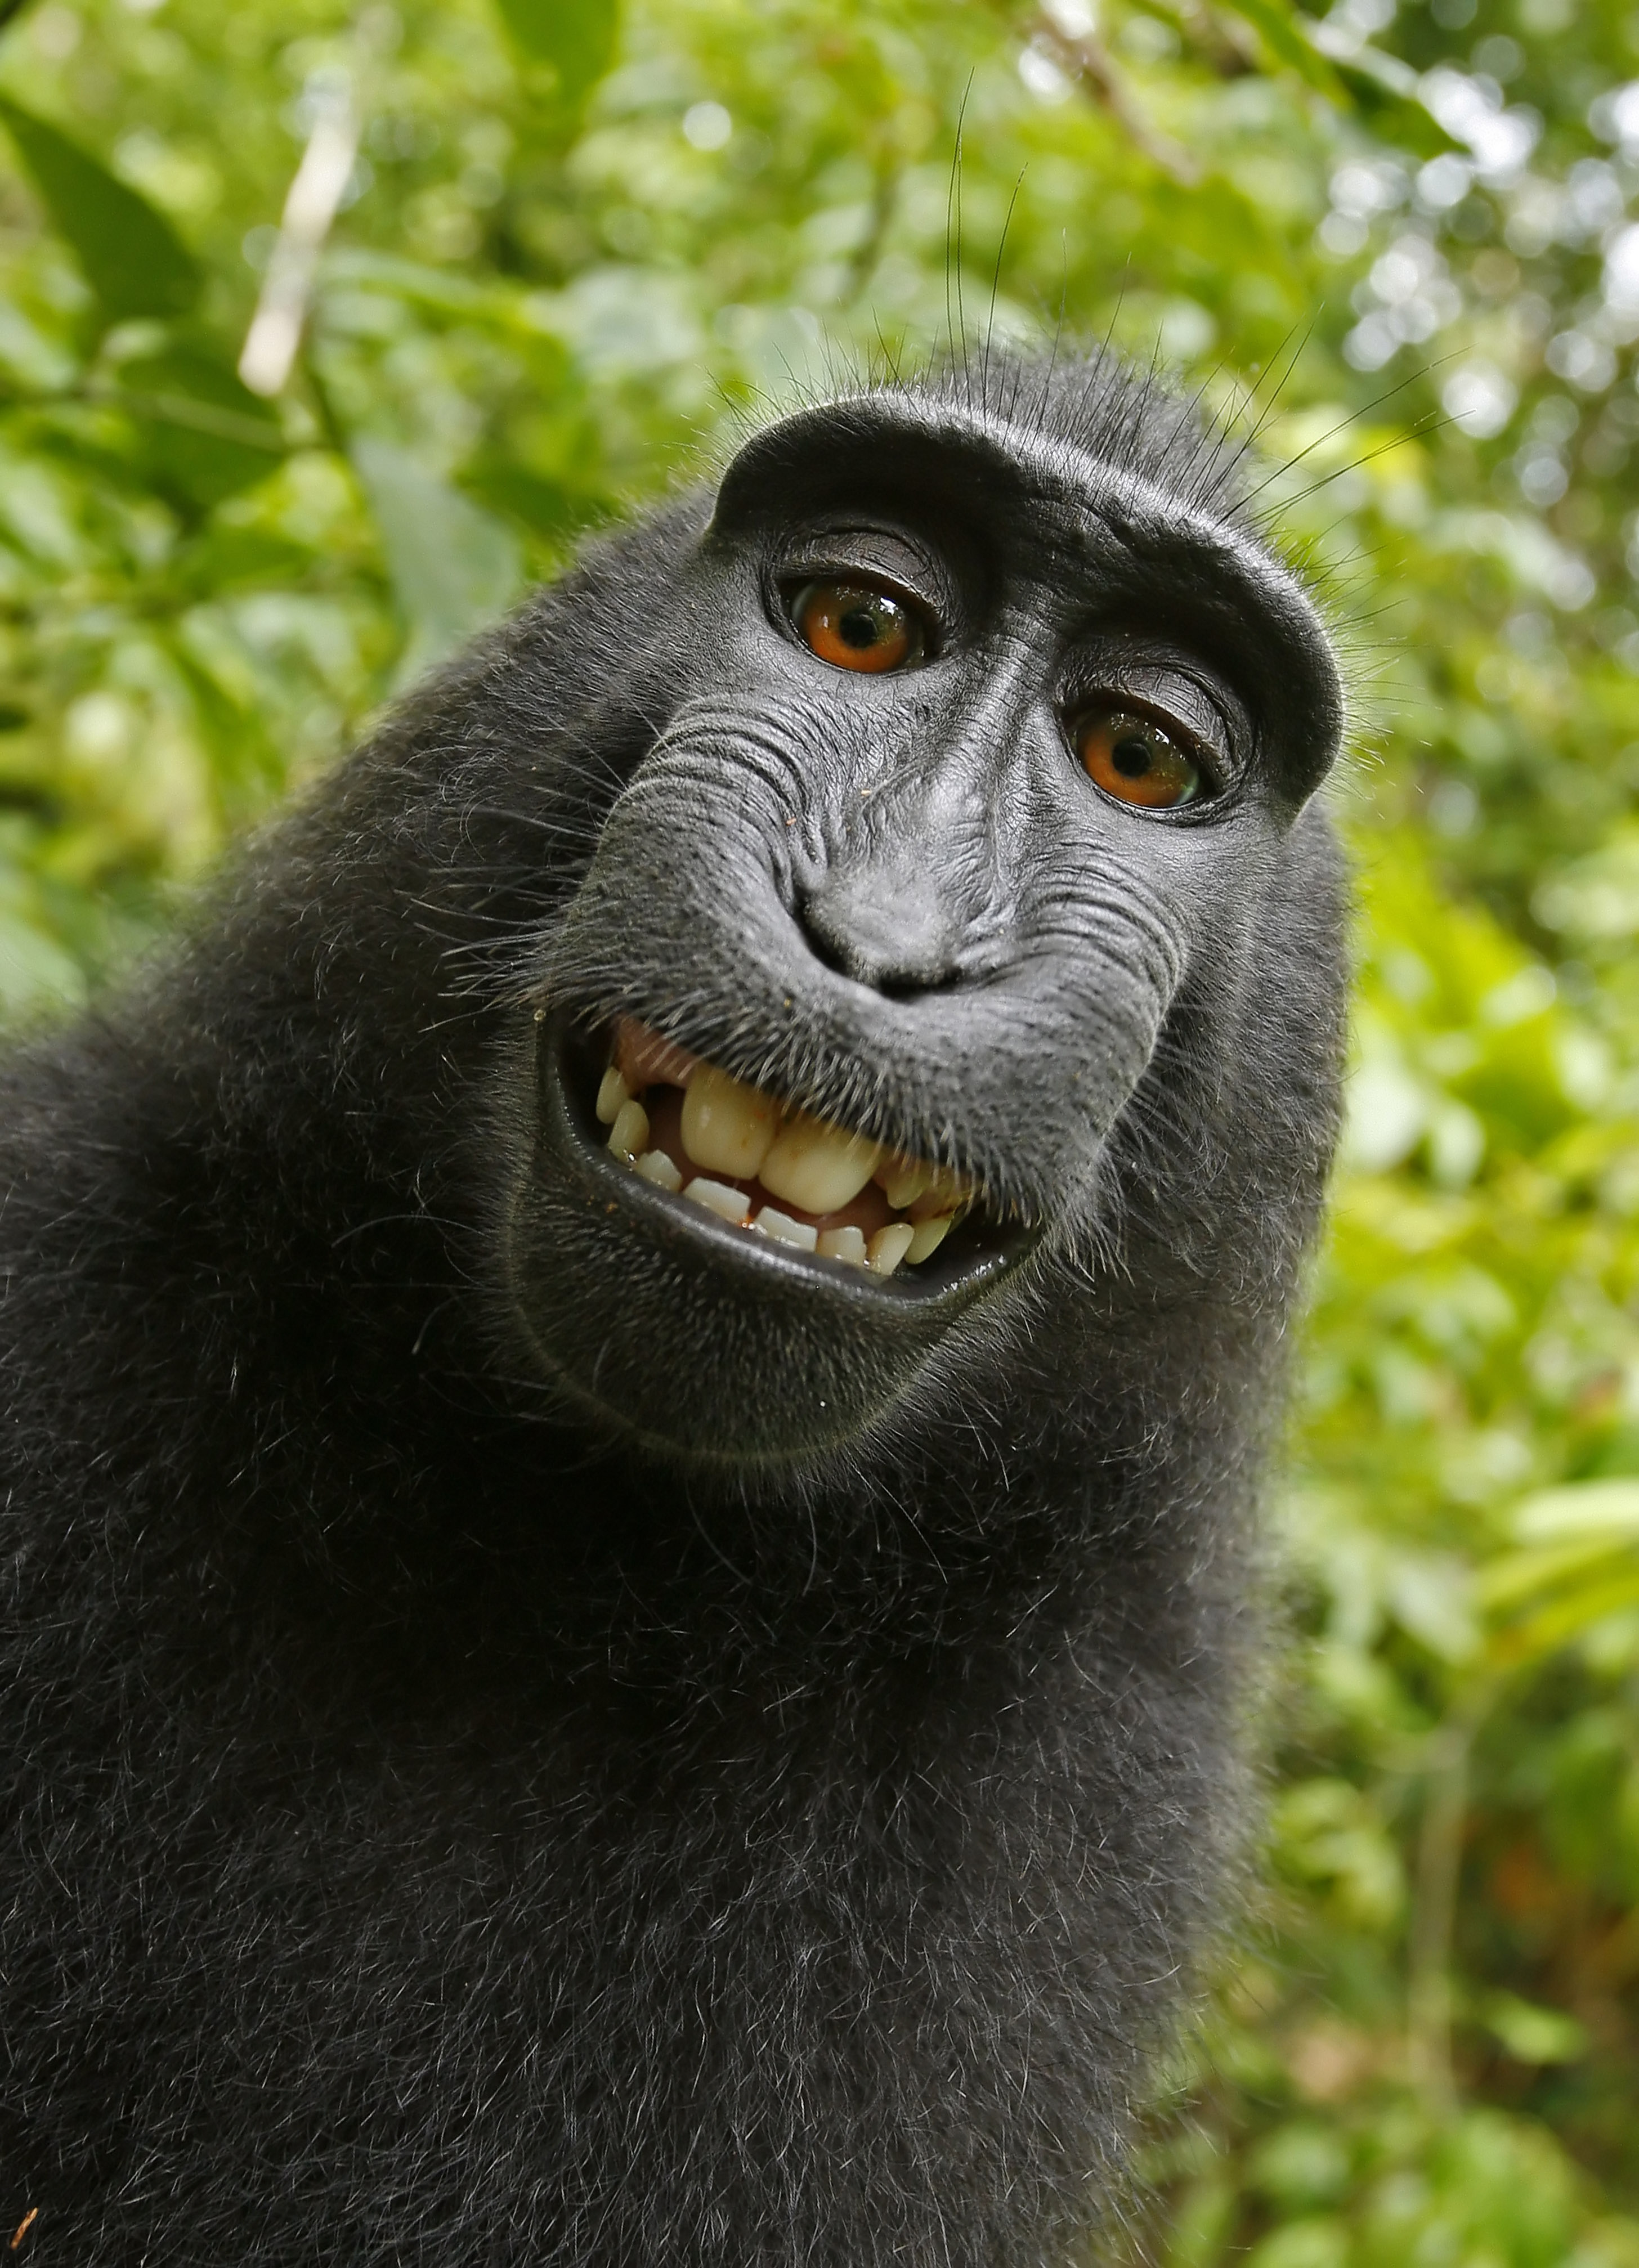 Monkey Selfie Copyright Dispute Wikipedia - The 21 best animal selfies of all time